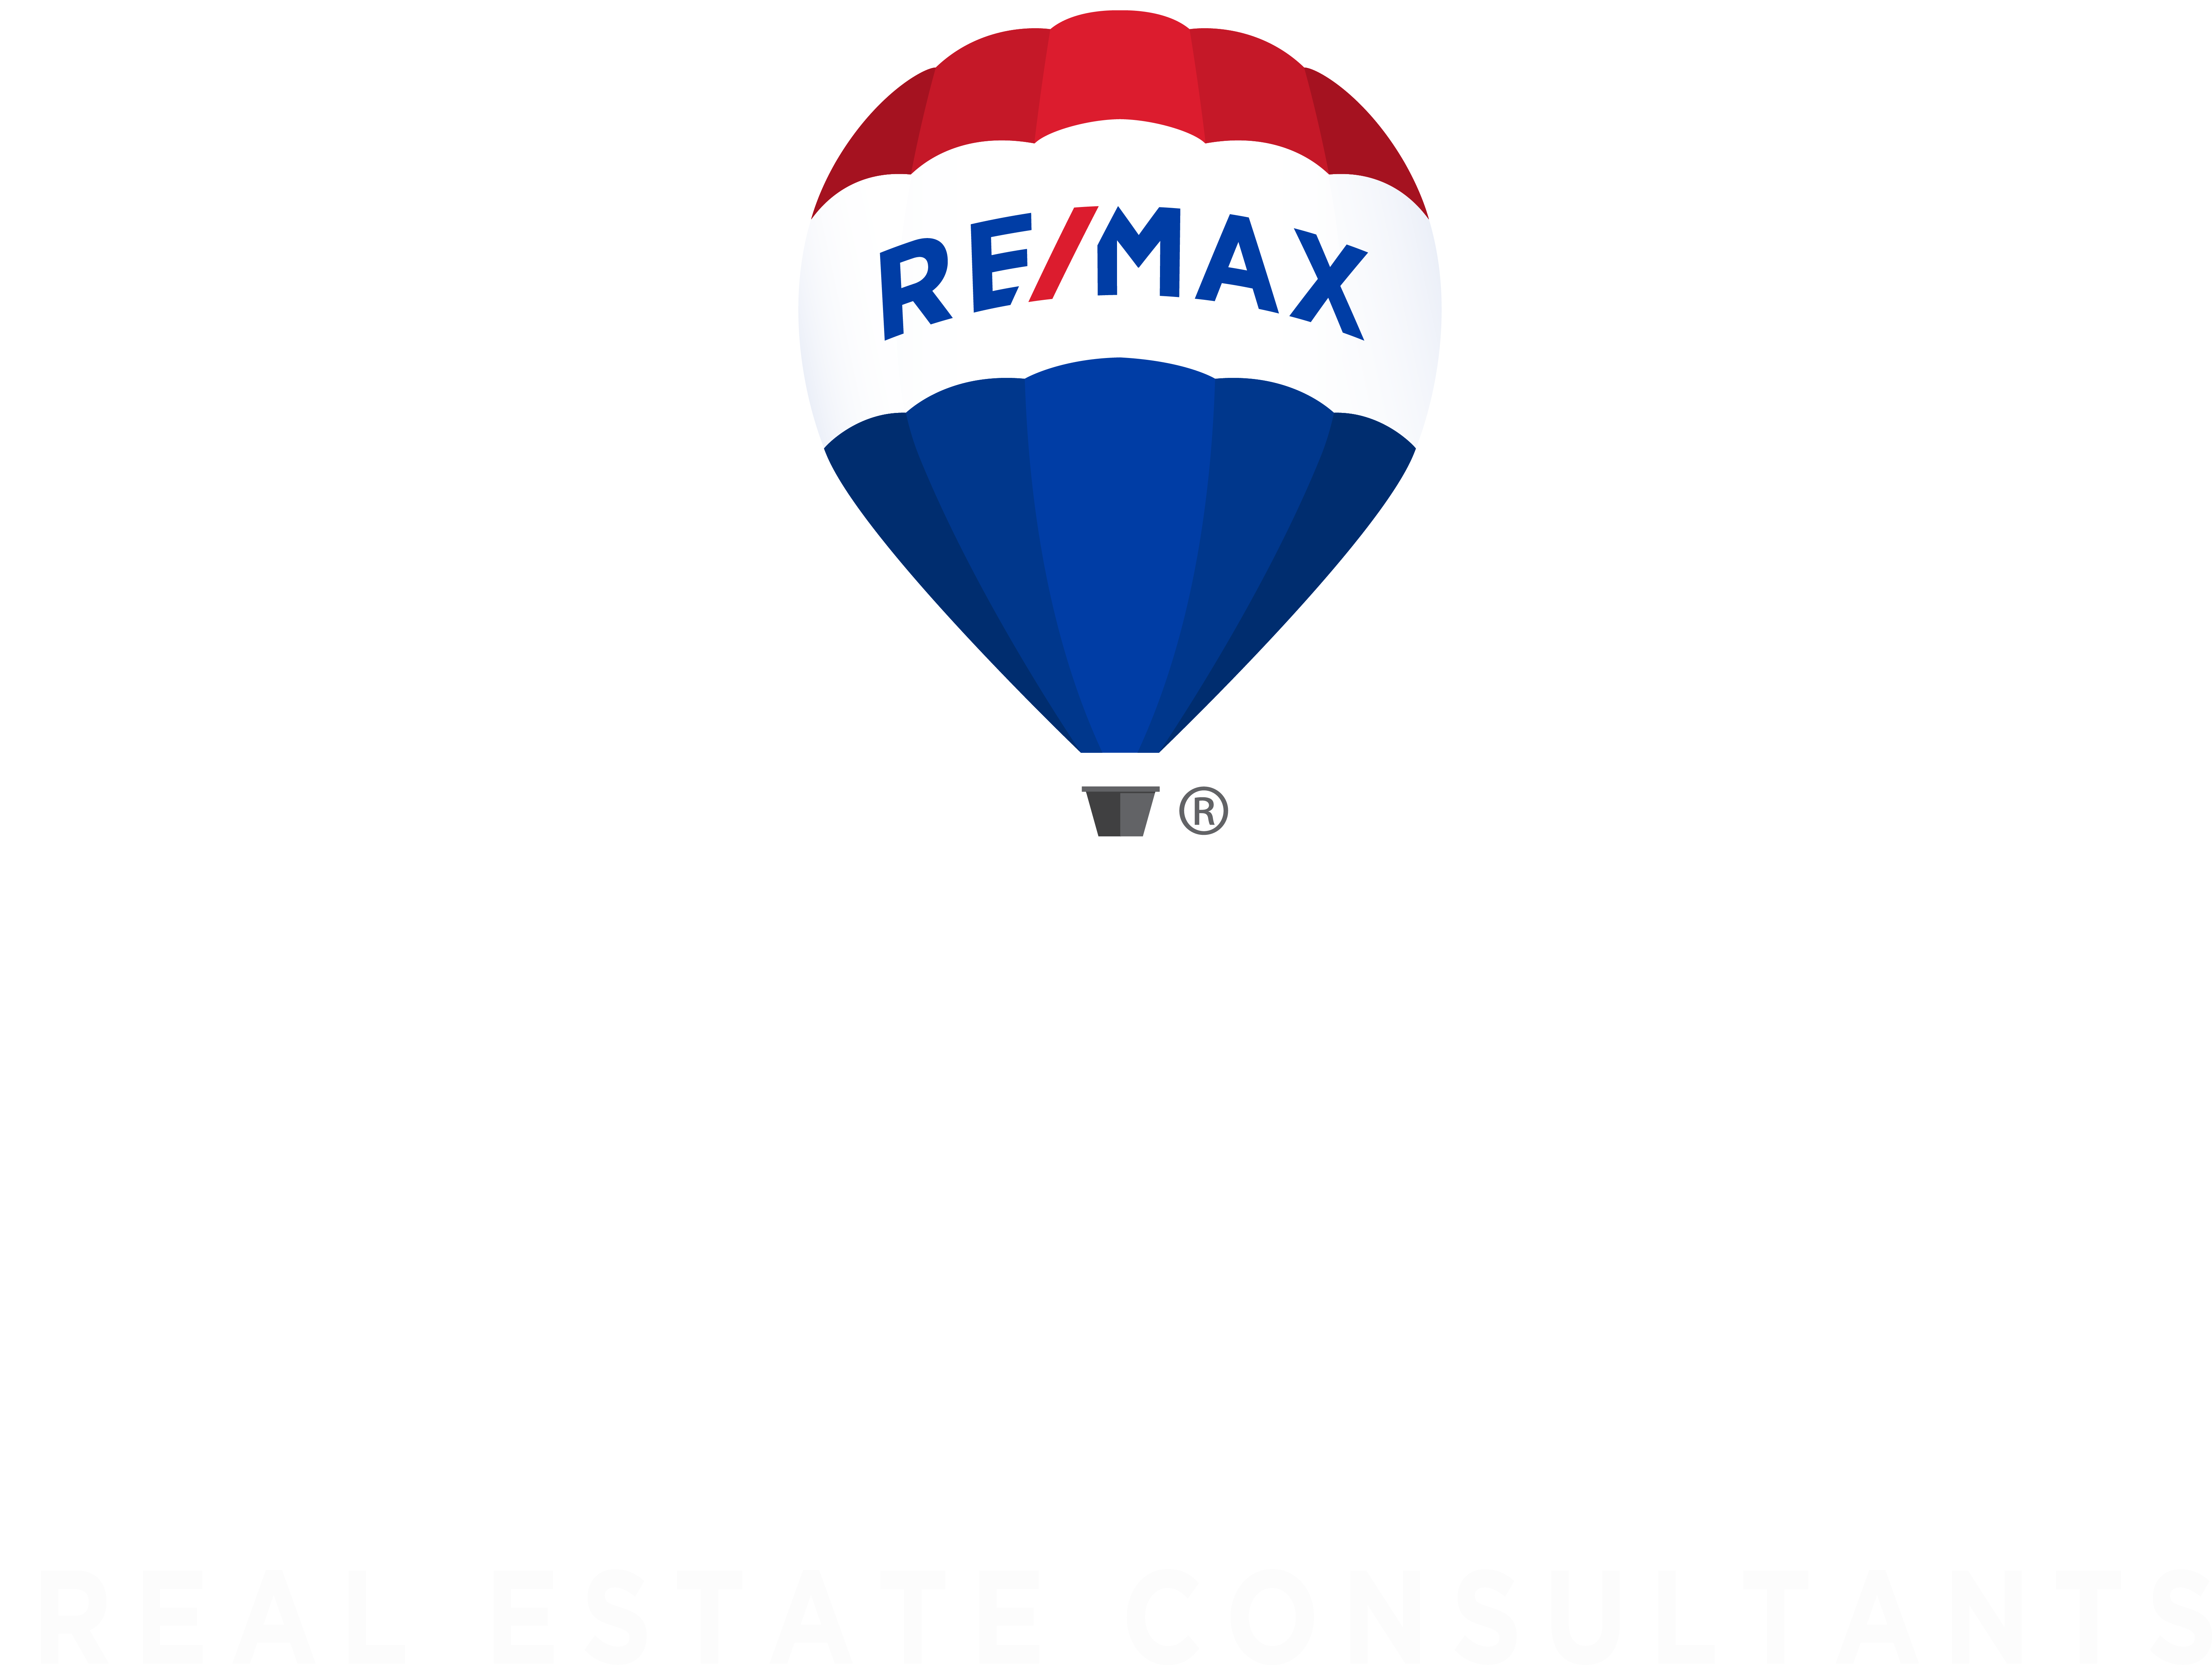 Real Estate Agent Services in Clemmons, NC